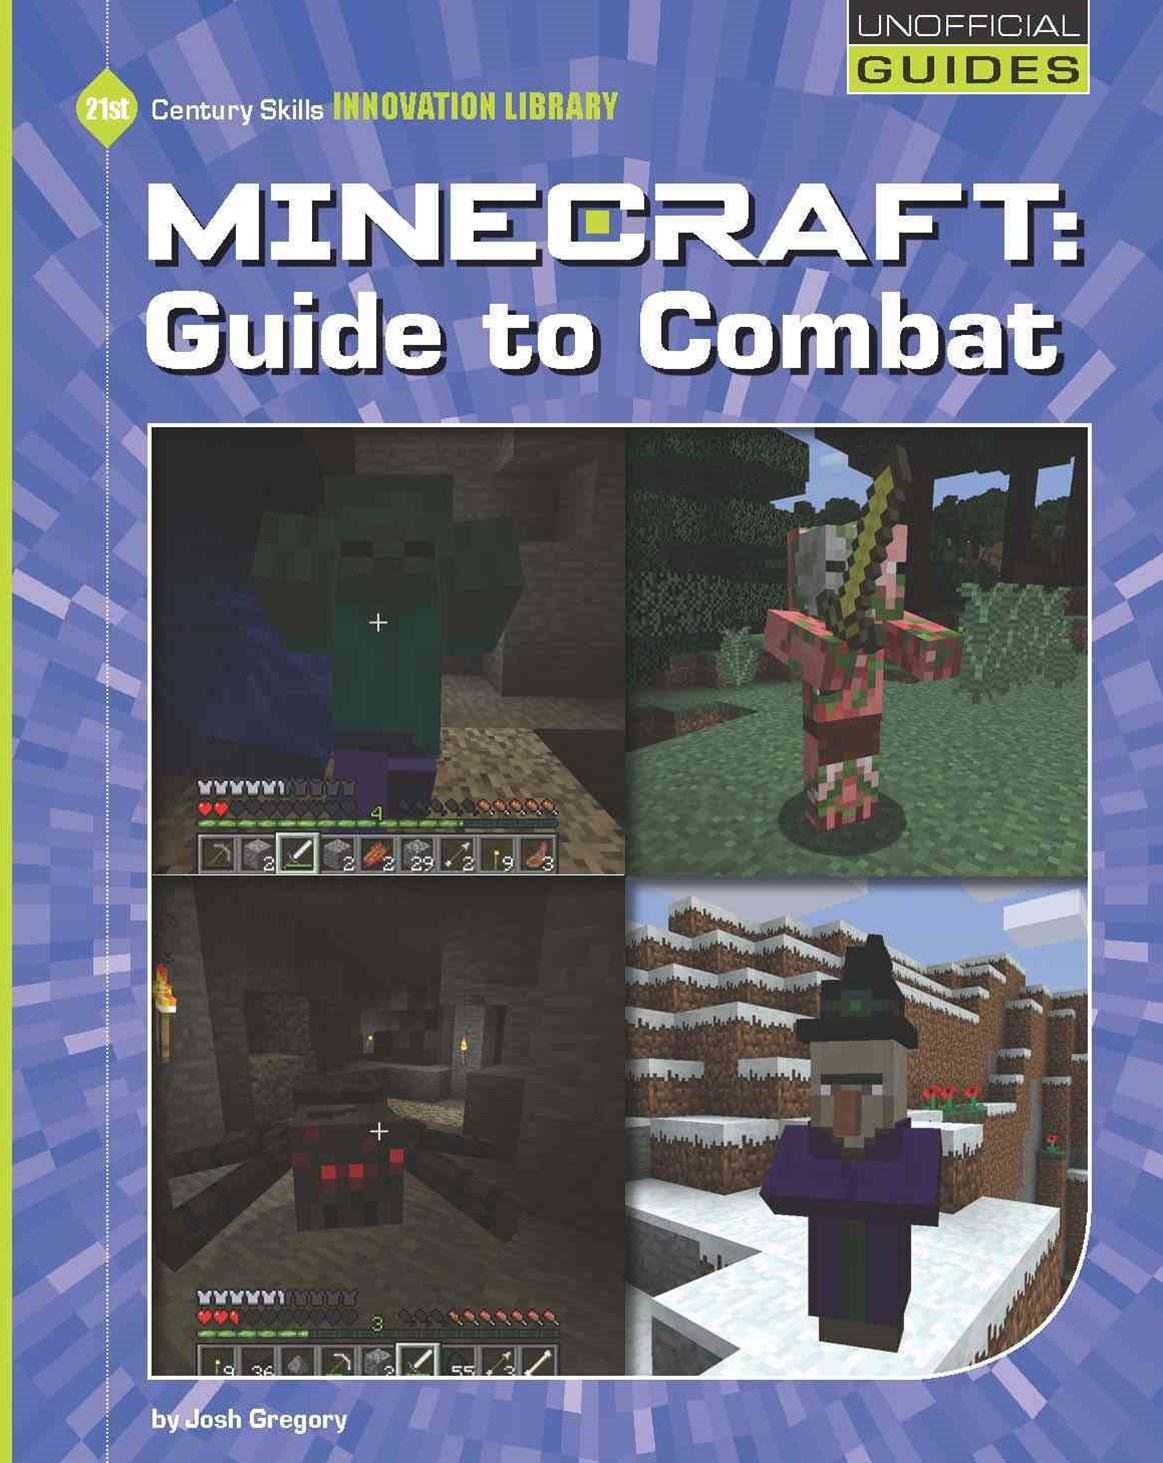 21st Century Skills Innovation Library: Minecraft: Guide to Combat